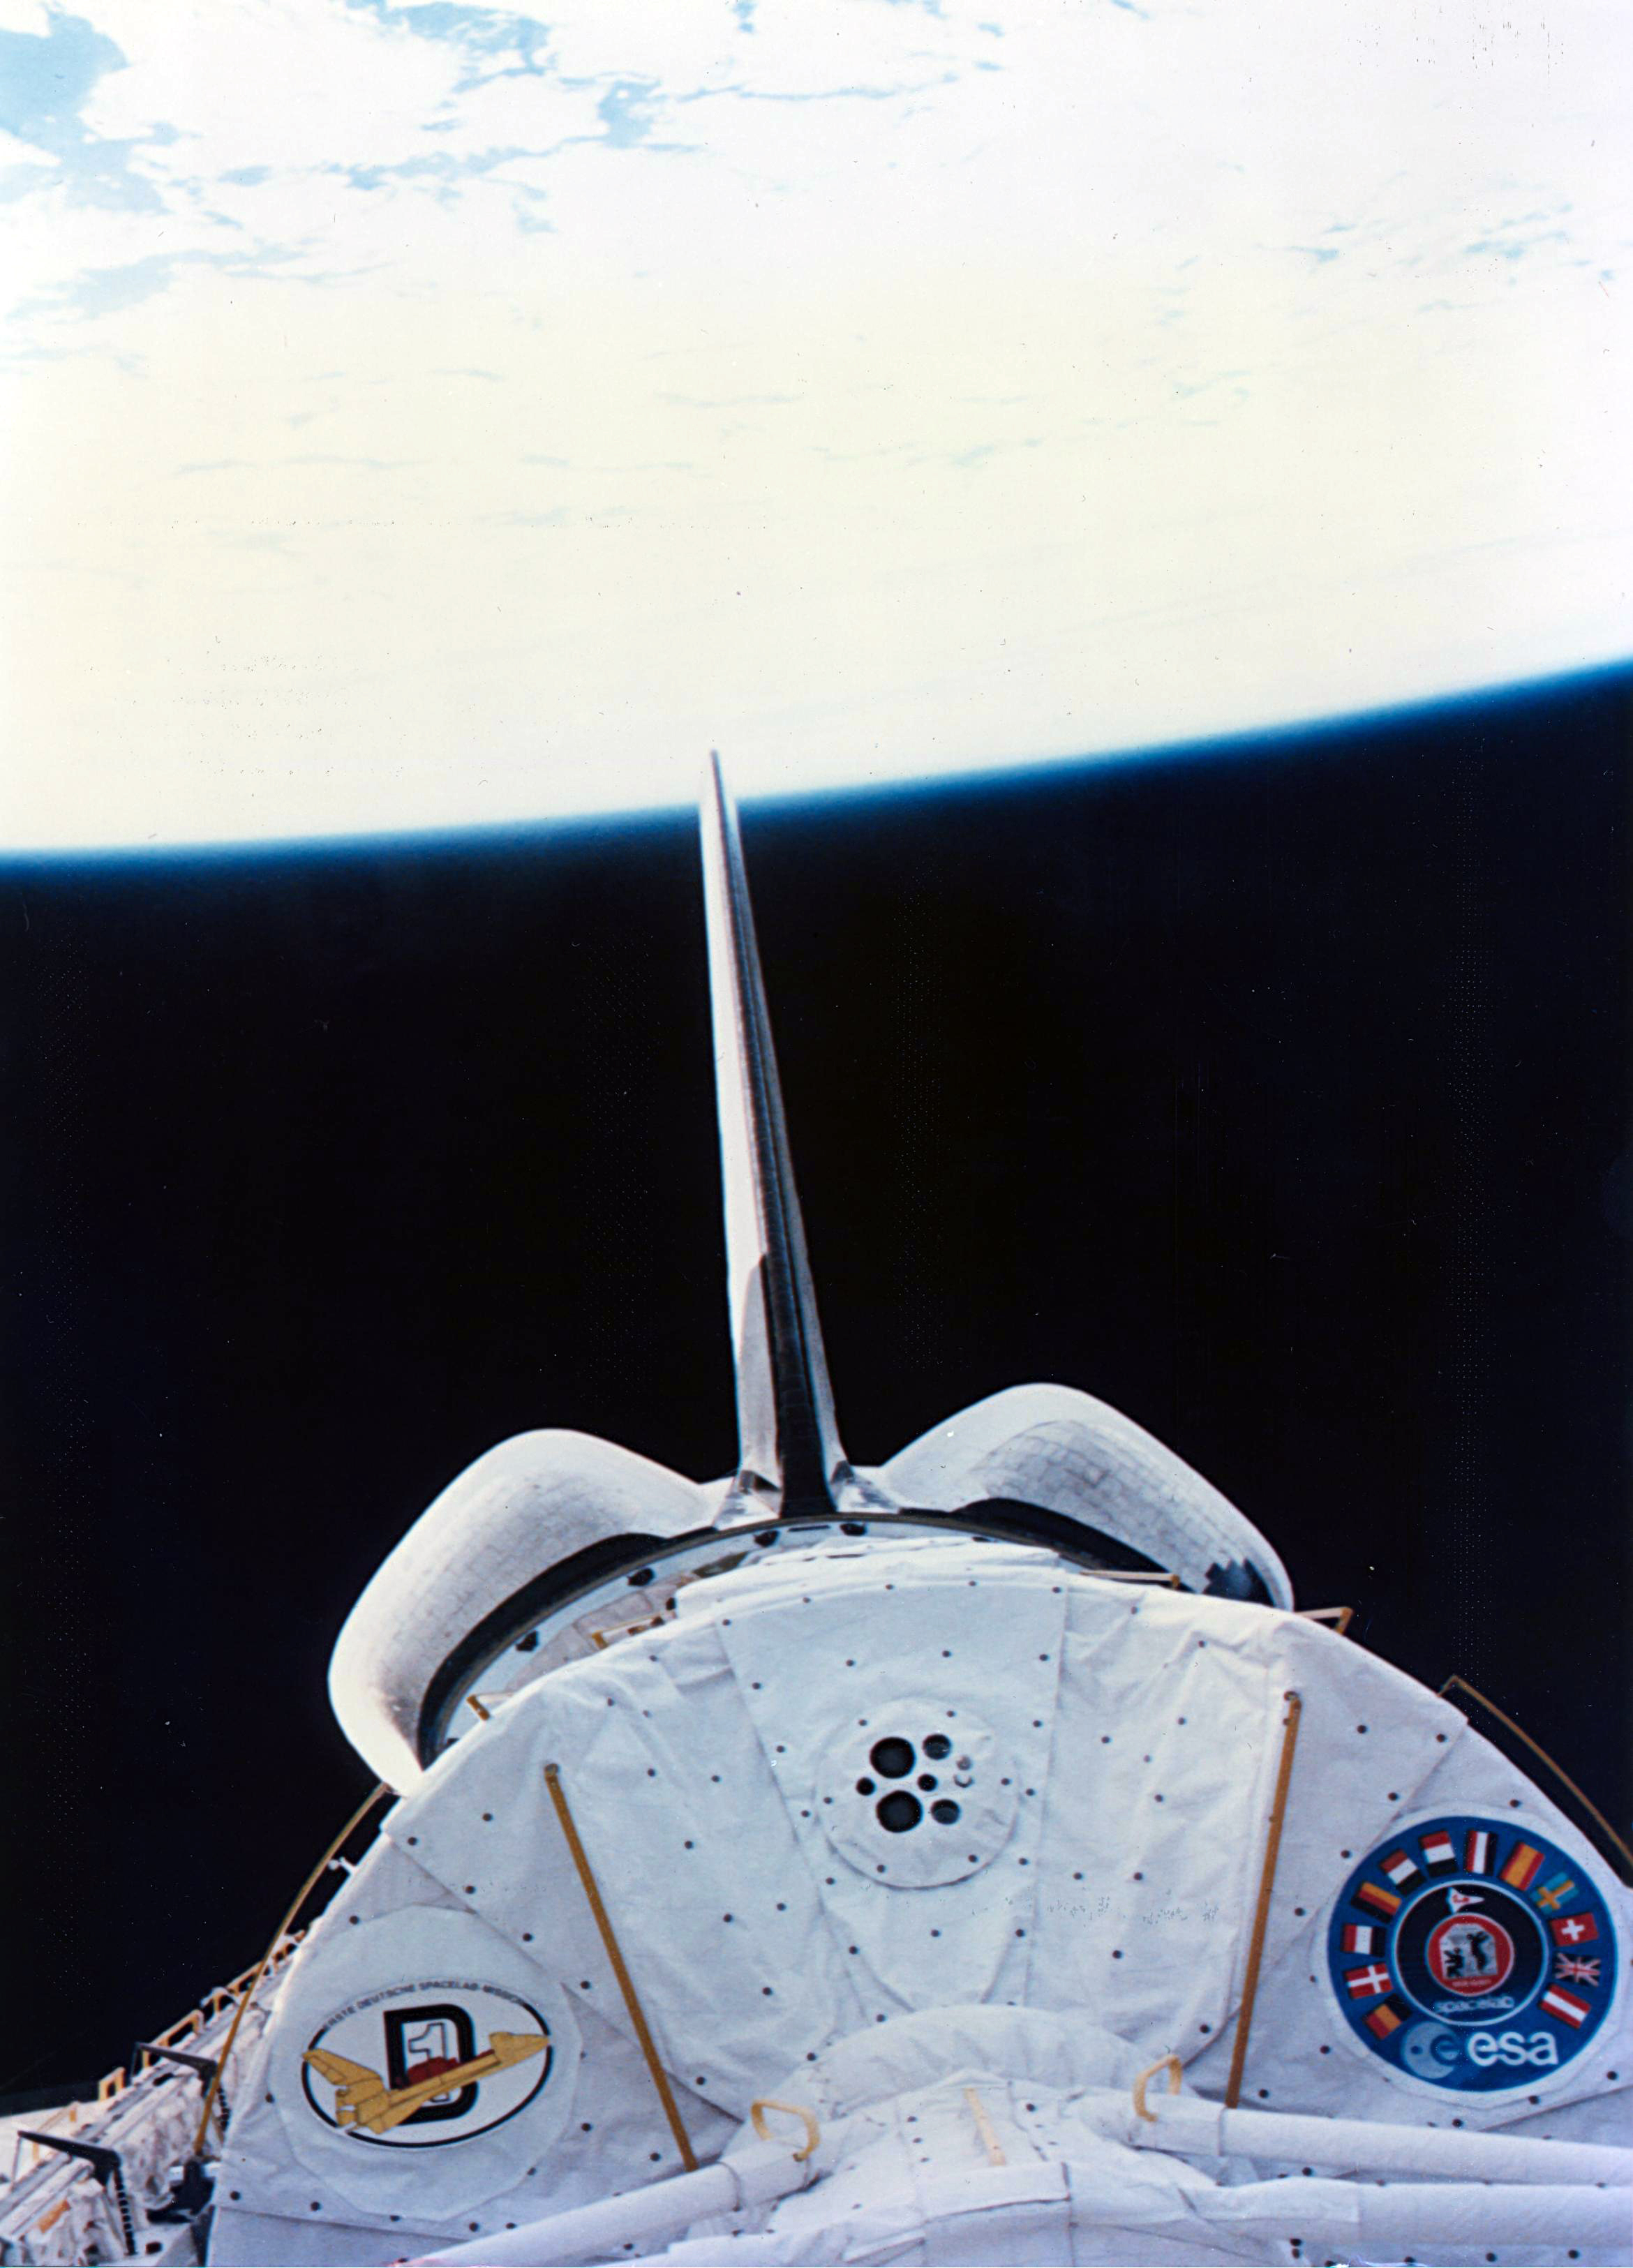 space shuttle challenger payload - photo #6